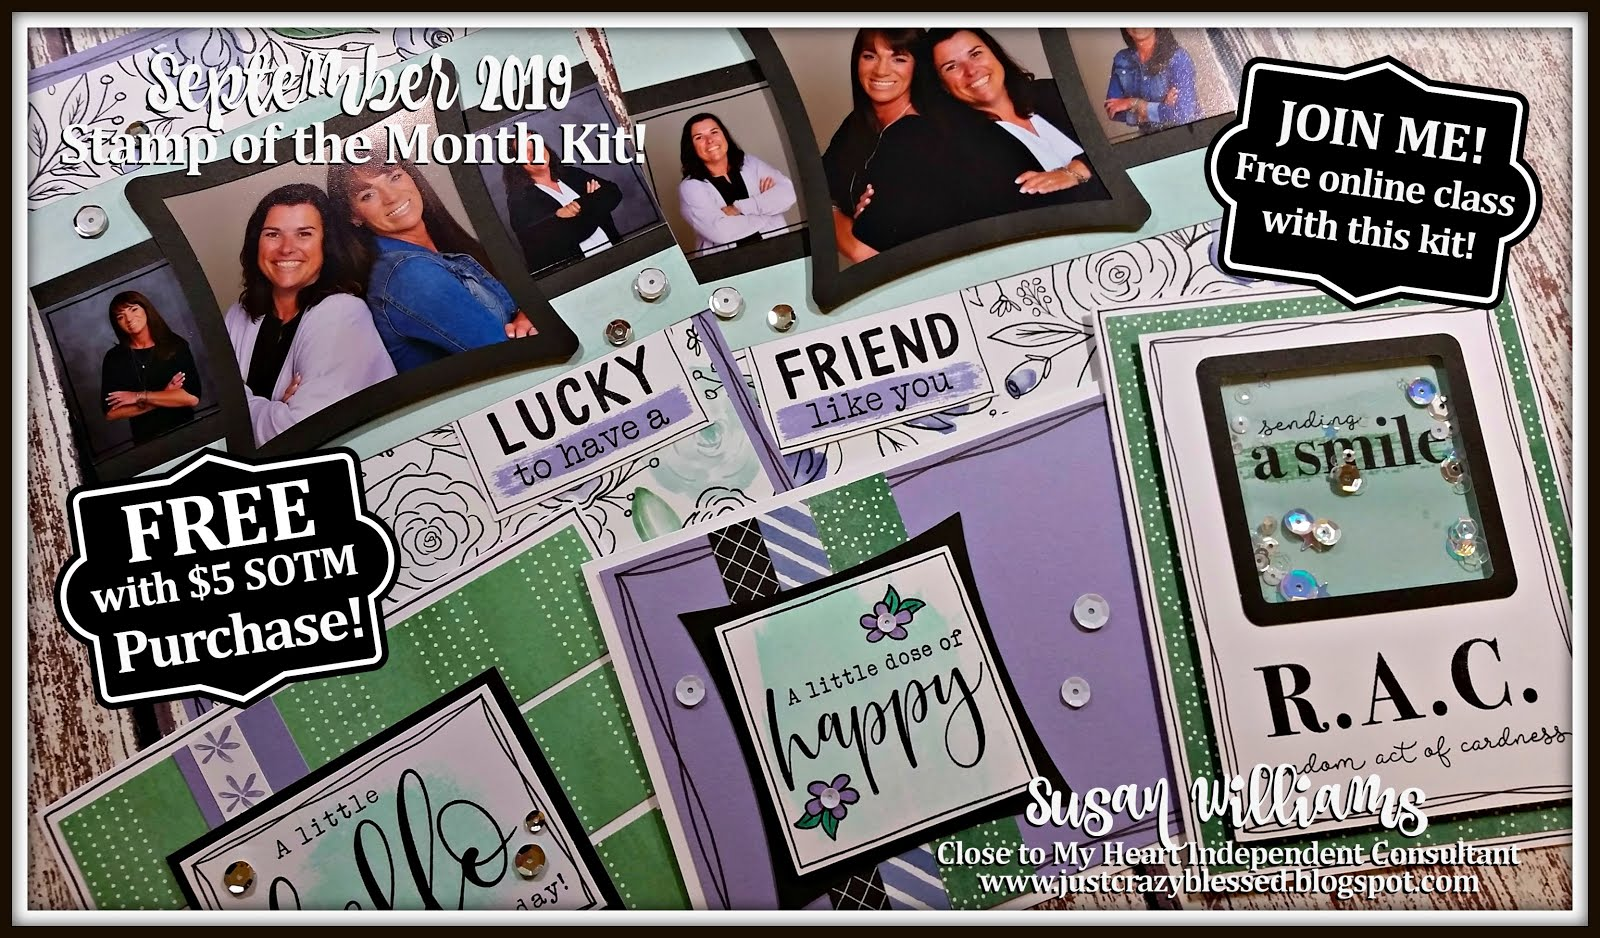 September 2019 Stamp of the Month Workshop!